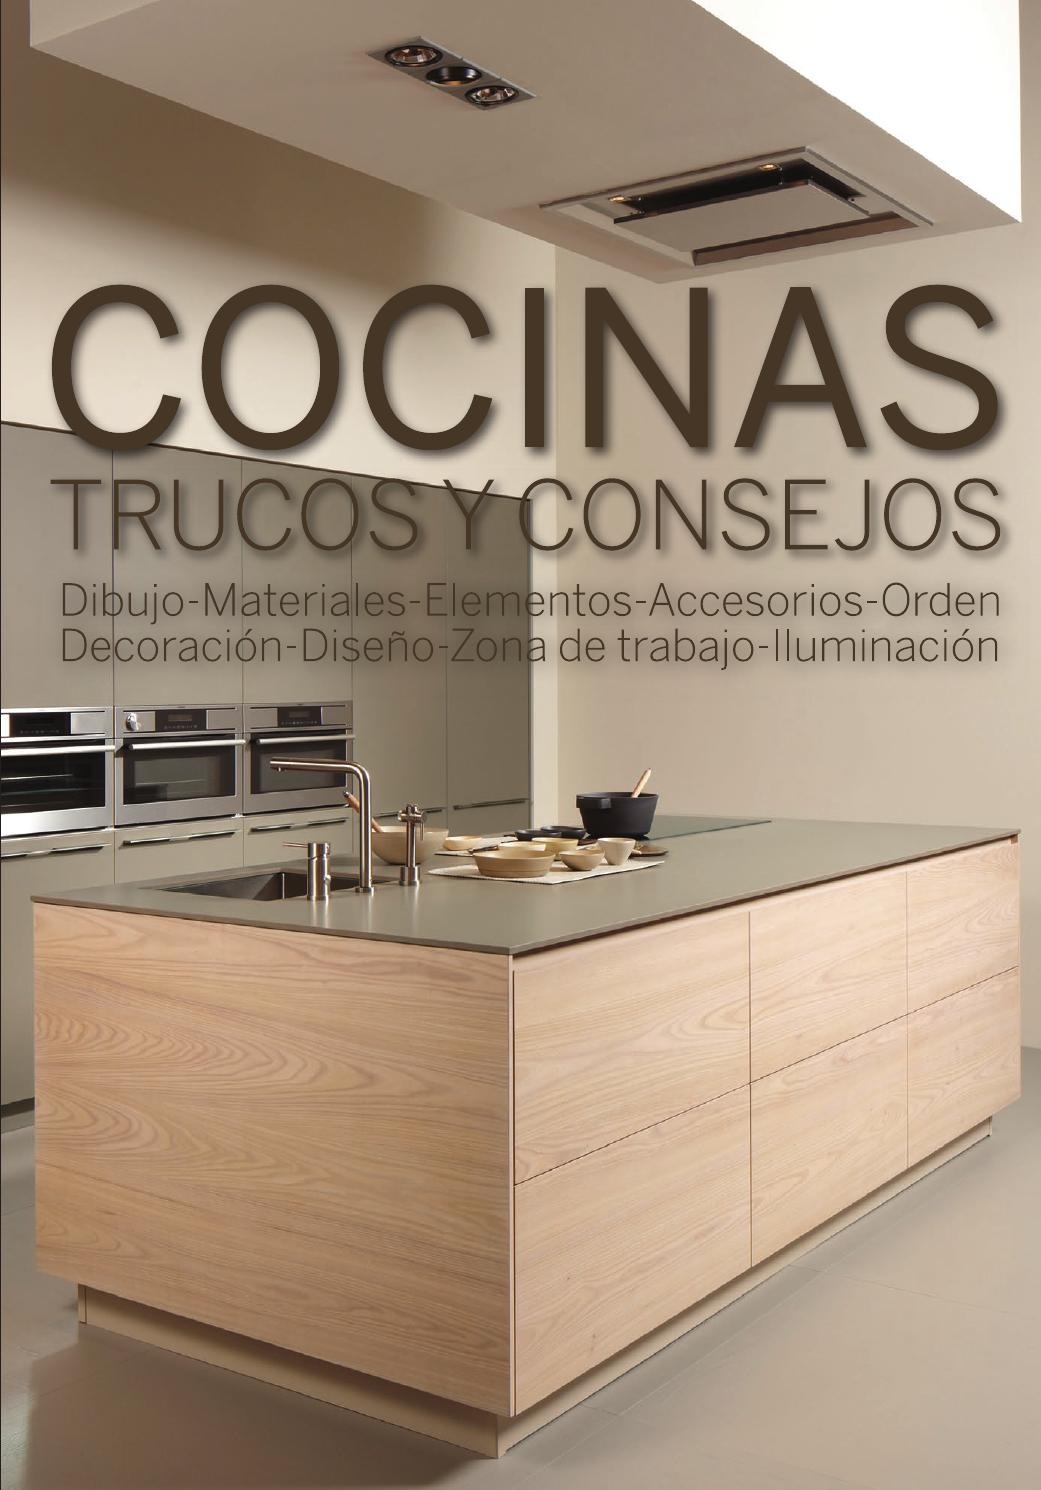 La Cocina La Plata Kitchens Tips And Tricks By Línea Editorial Publishers Issuu